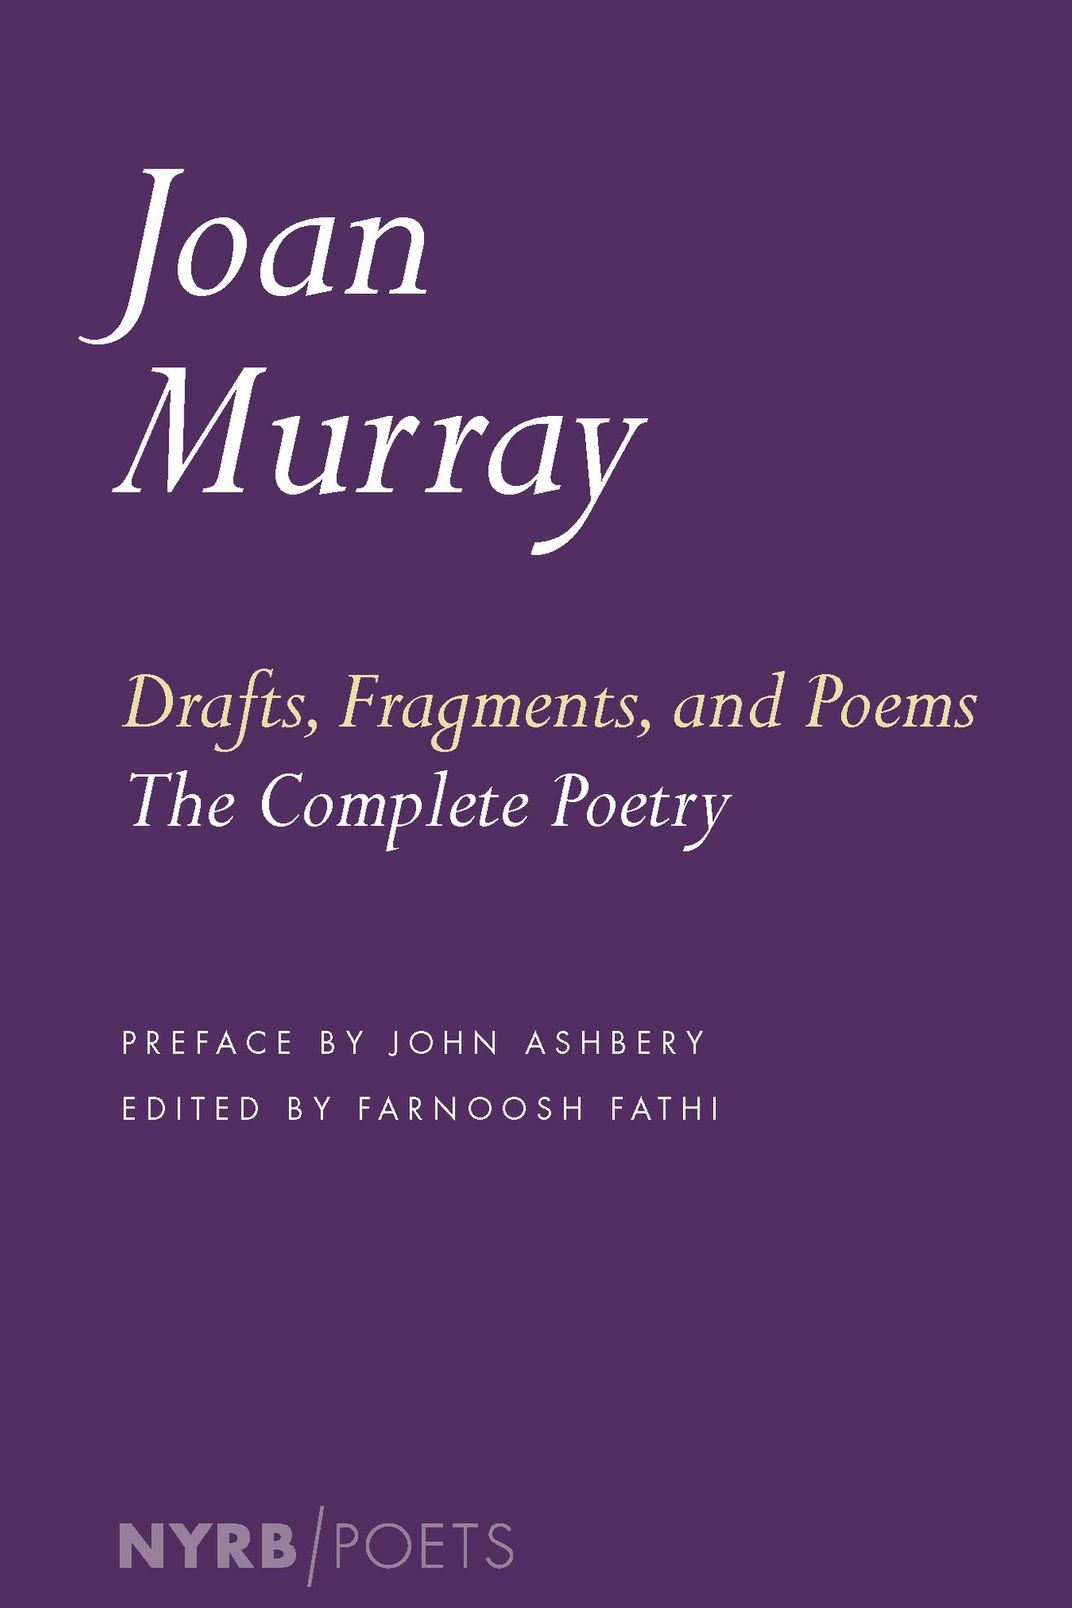 <em>Drafts, Fragments, and Poems: The Complete Poetry</em>, by Joan Murray (New York Review Books)